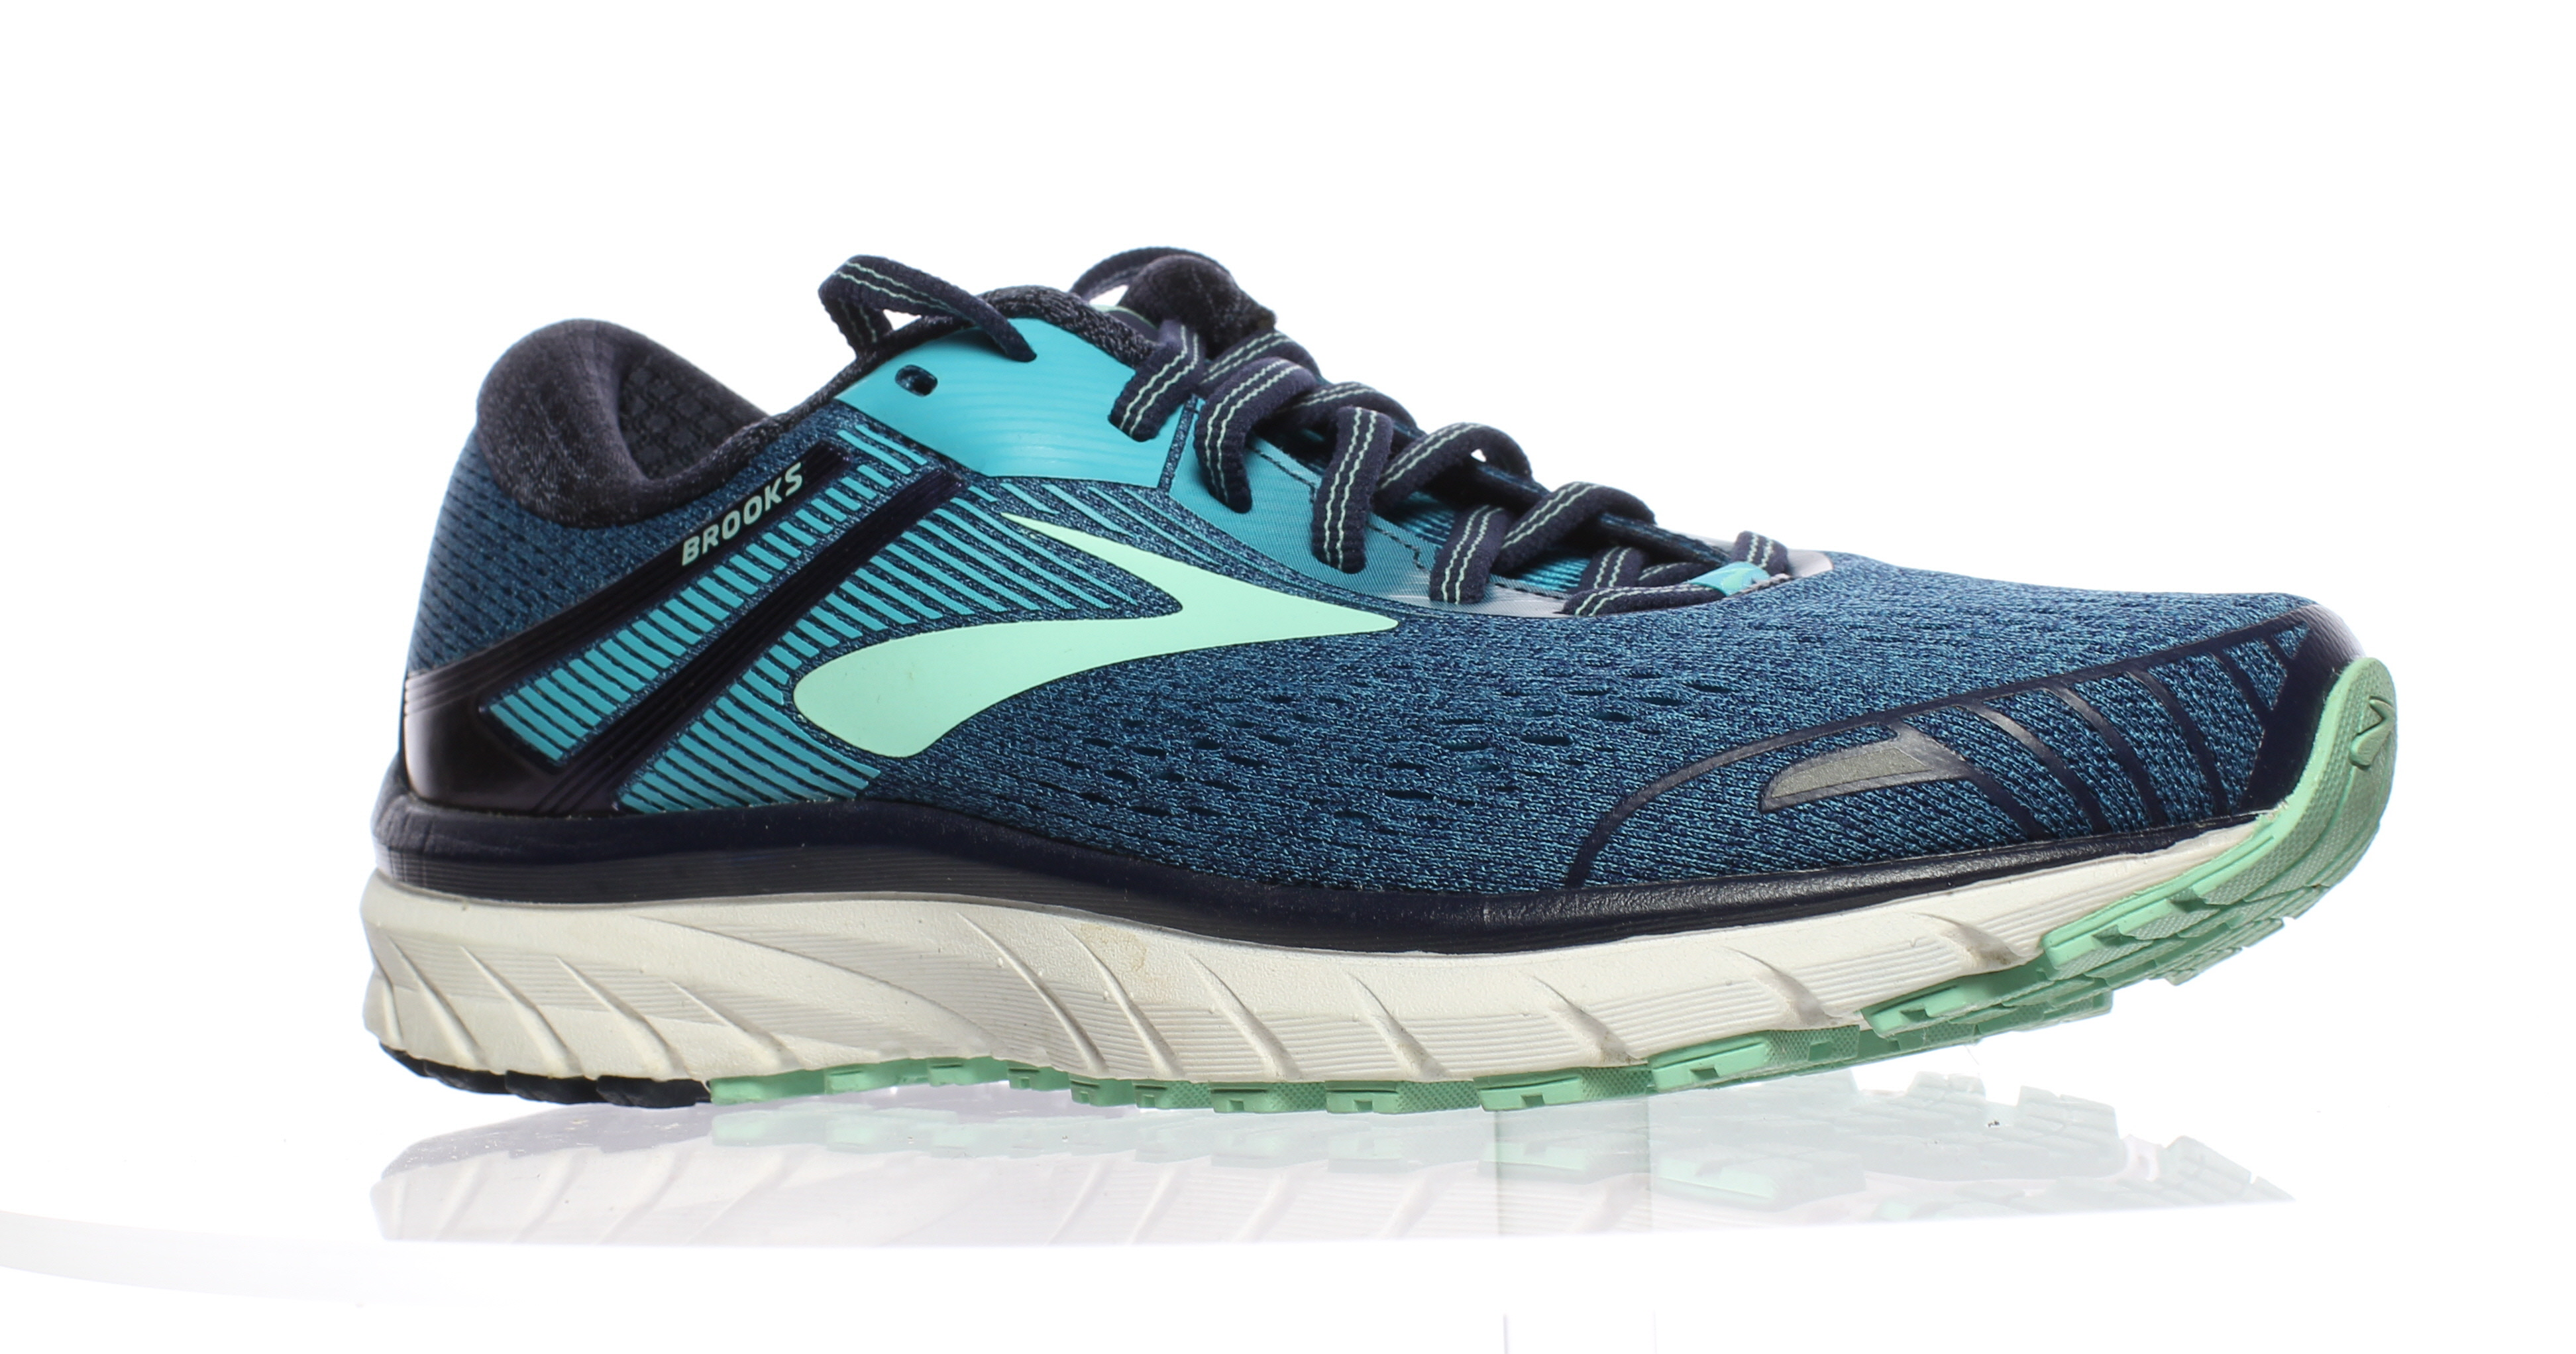 Brooks Damenschuhe 1202681D Navy/Teal/Mint (C,D,W) Walking Schuhes Größe 8 (C,D,W) Navy/Teal/Mint (27837) 0ae70e